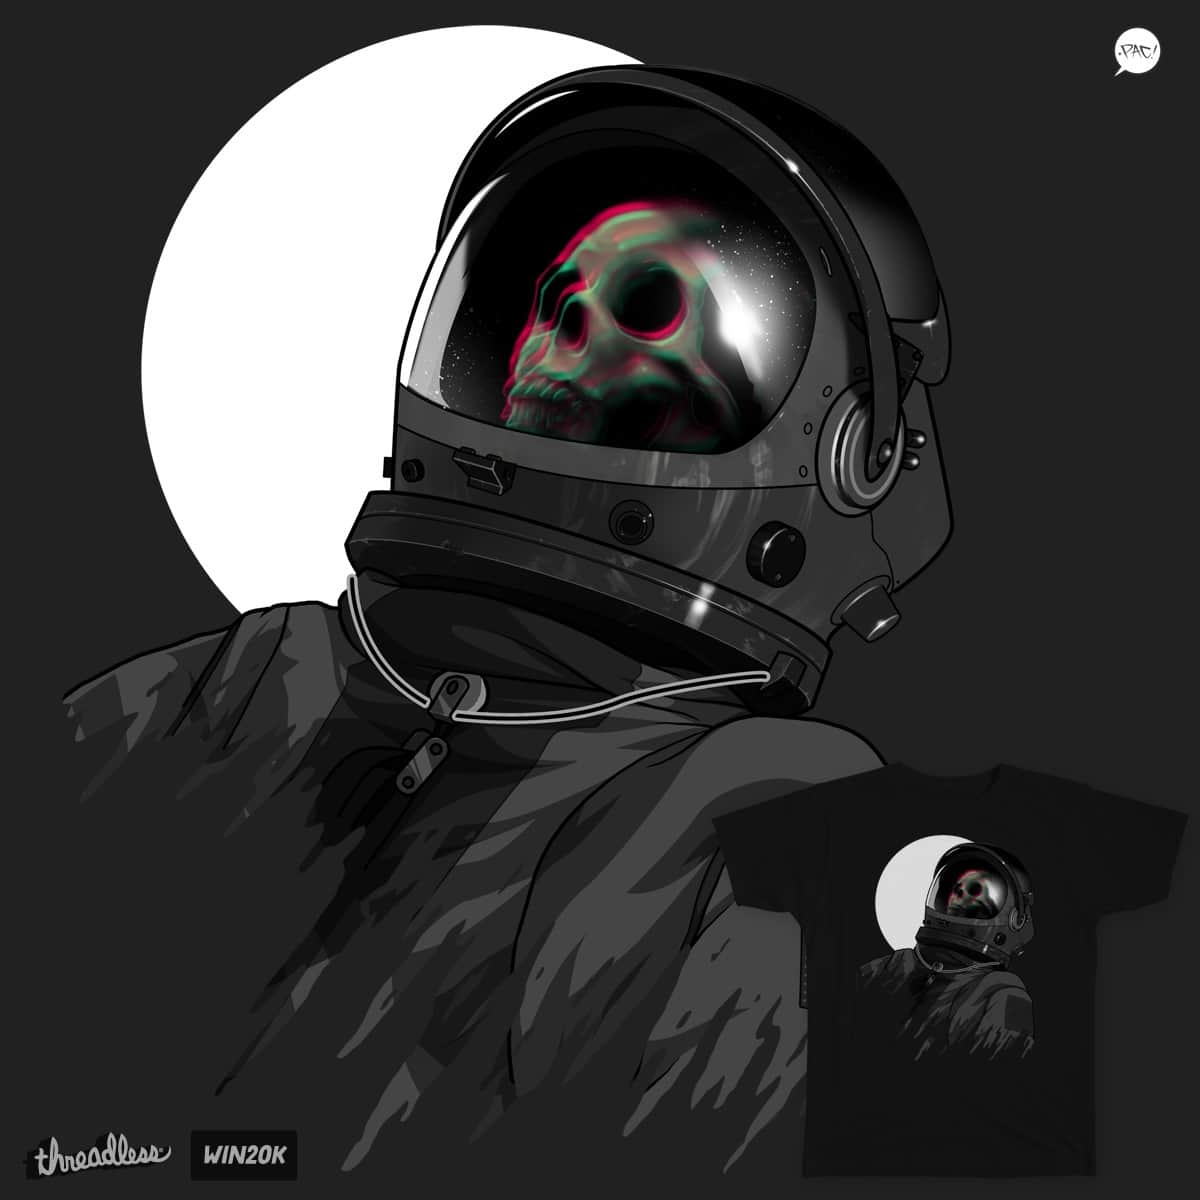 Dead Astro  by pacman23 on Threadless